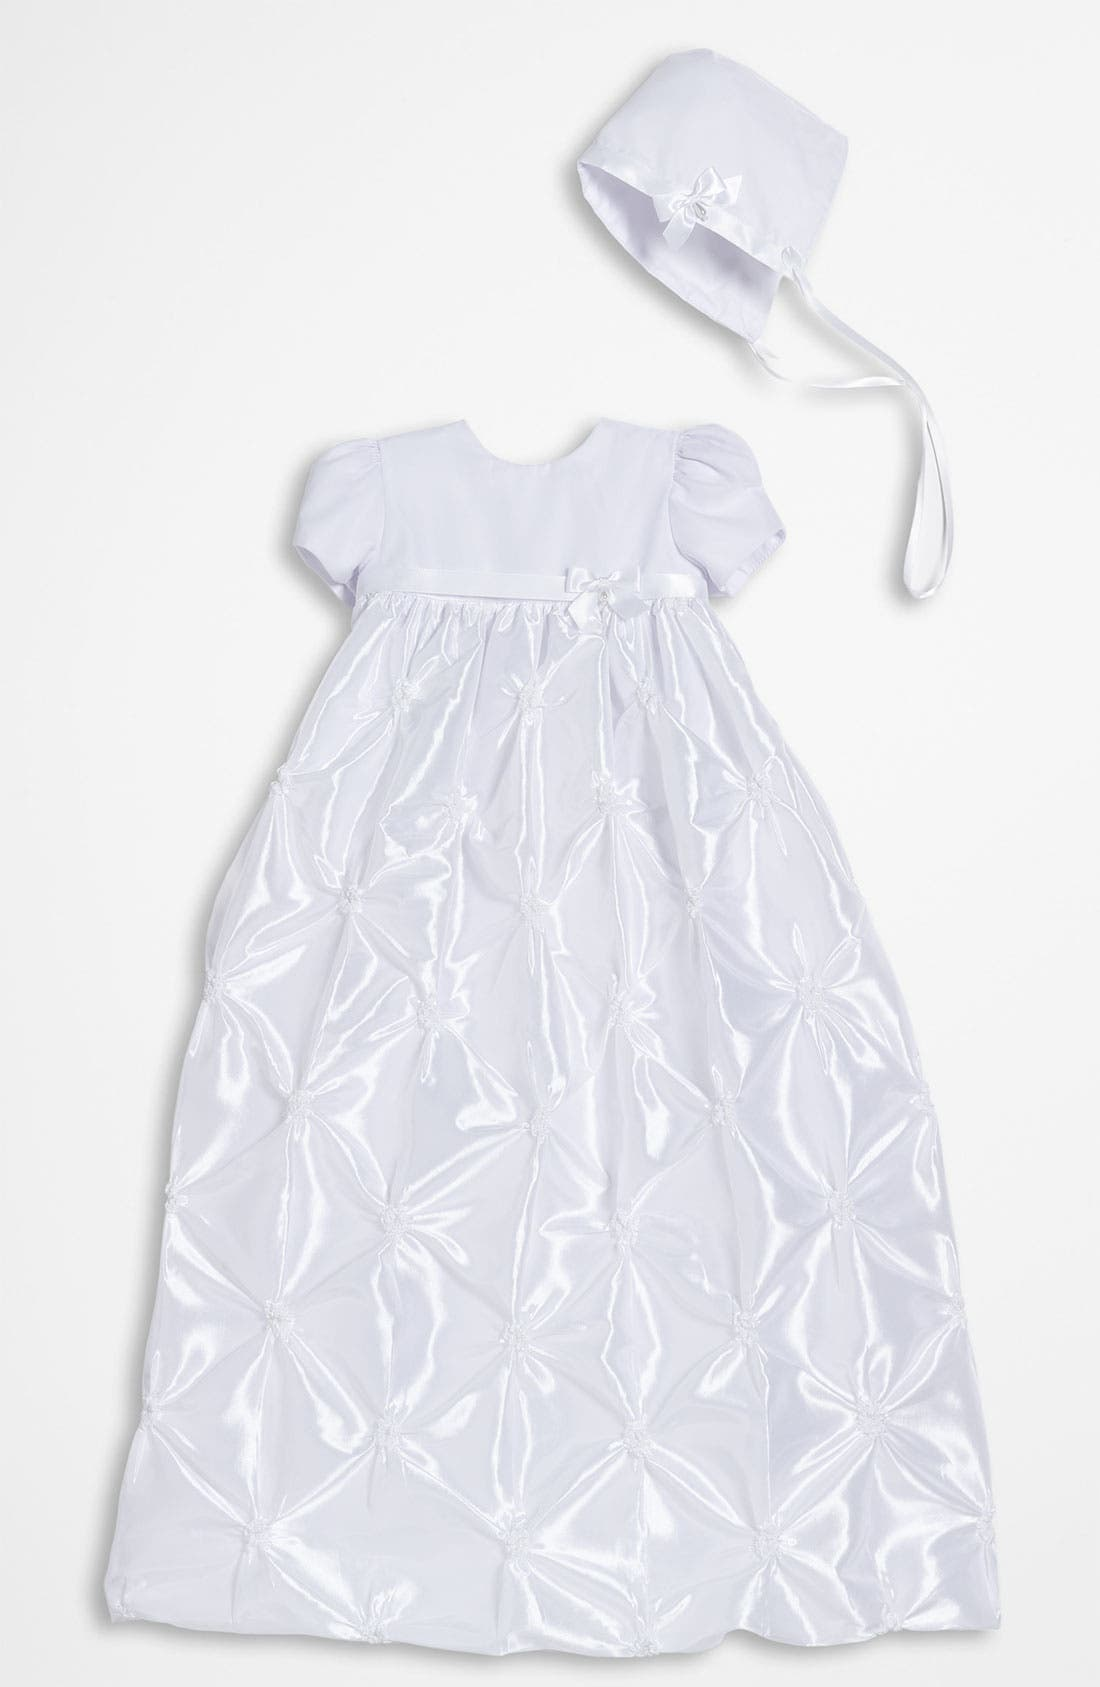 Little Things Mean a Lot Taffeta Gown & Bonnet (Baby)